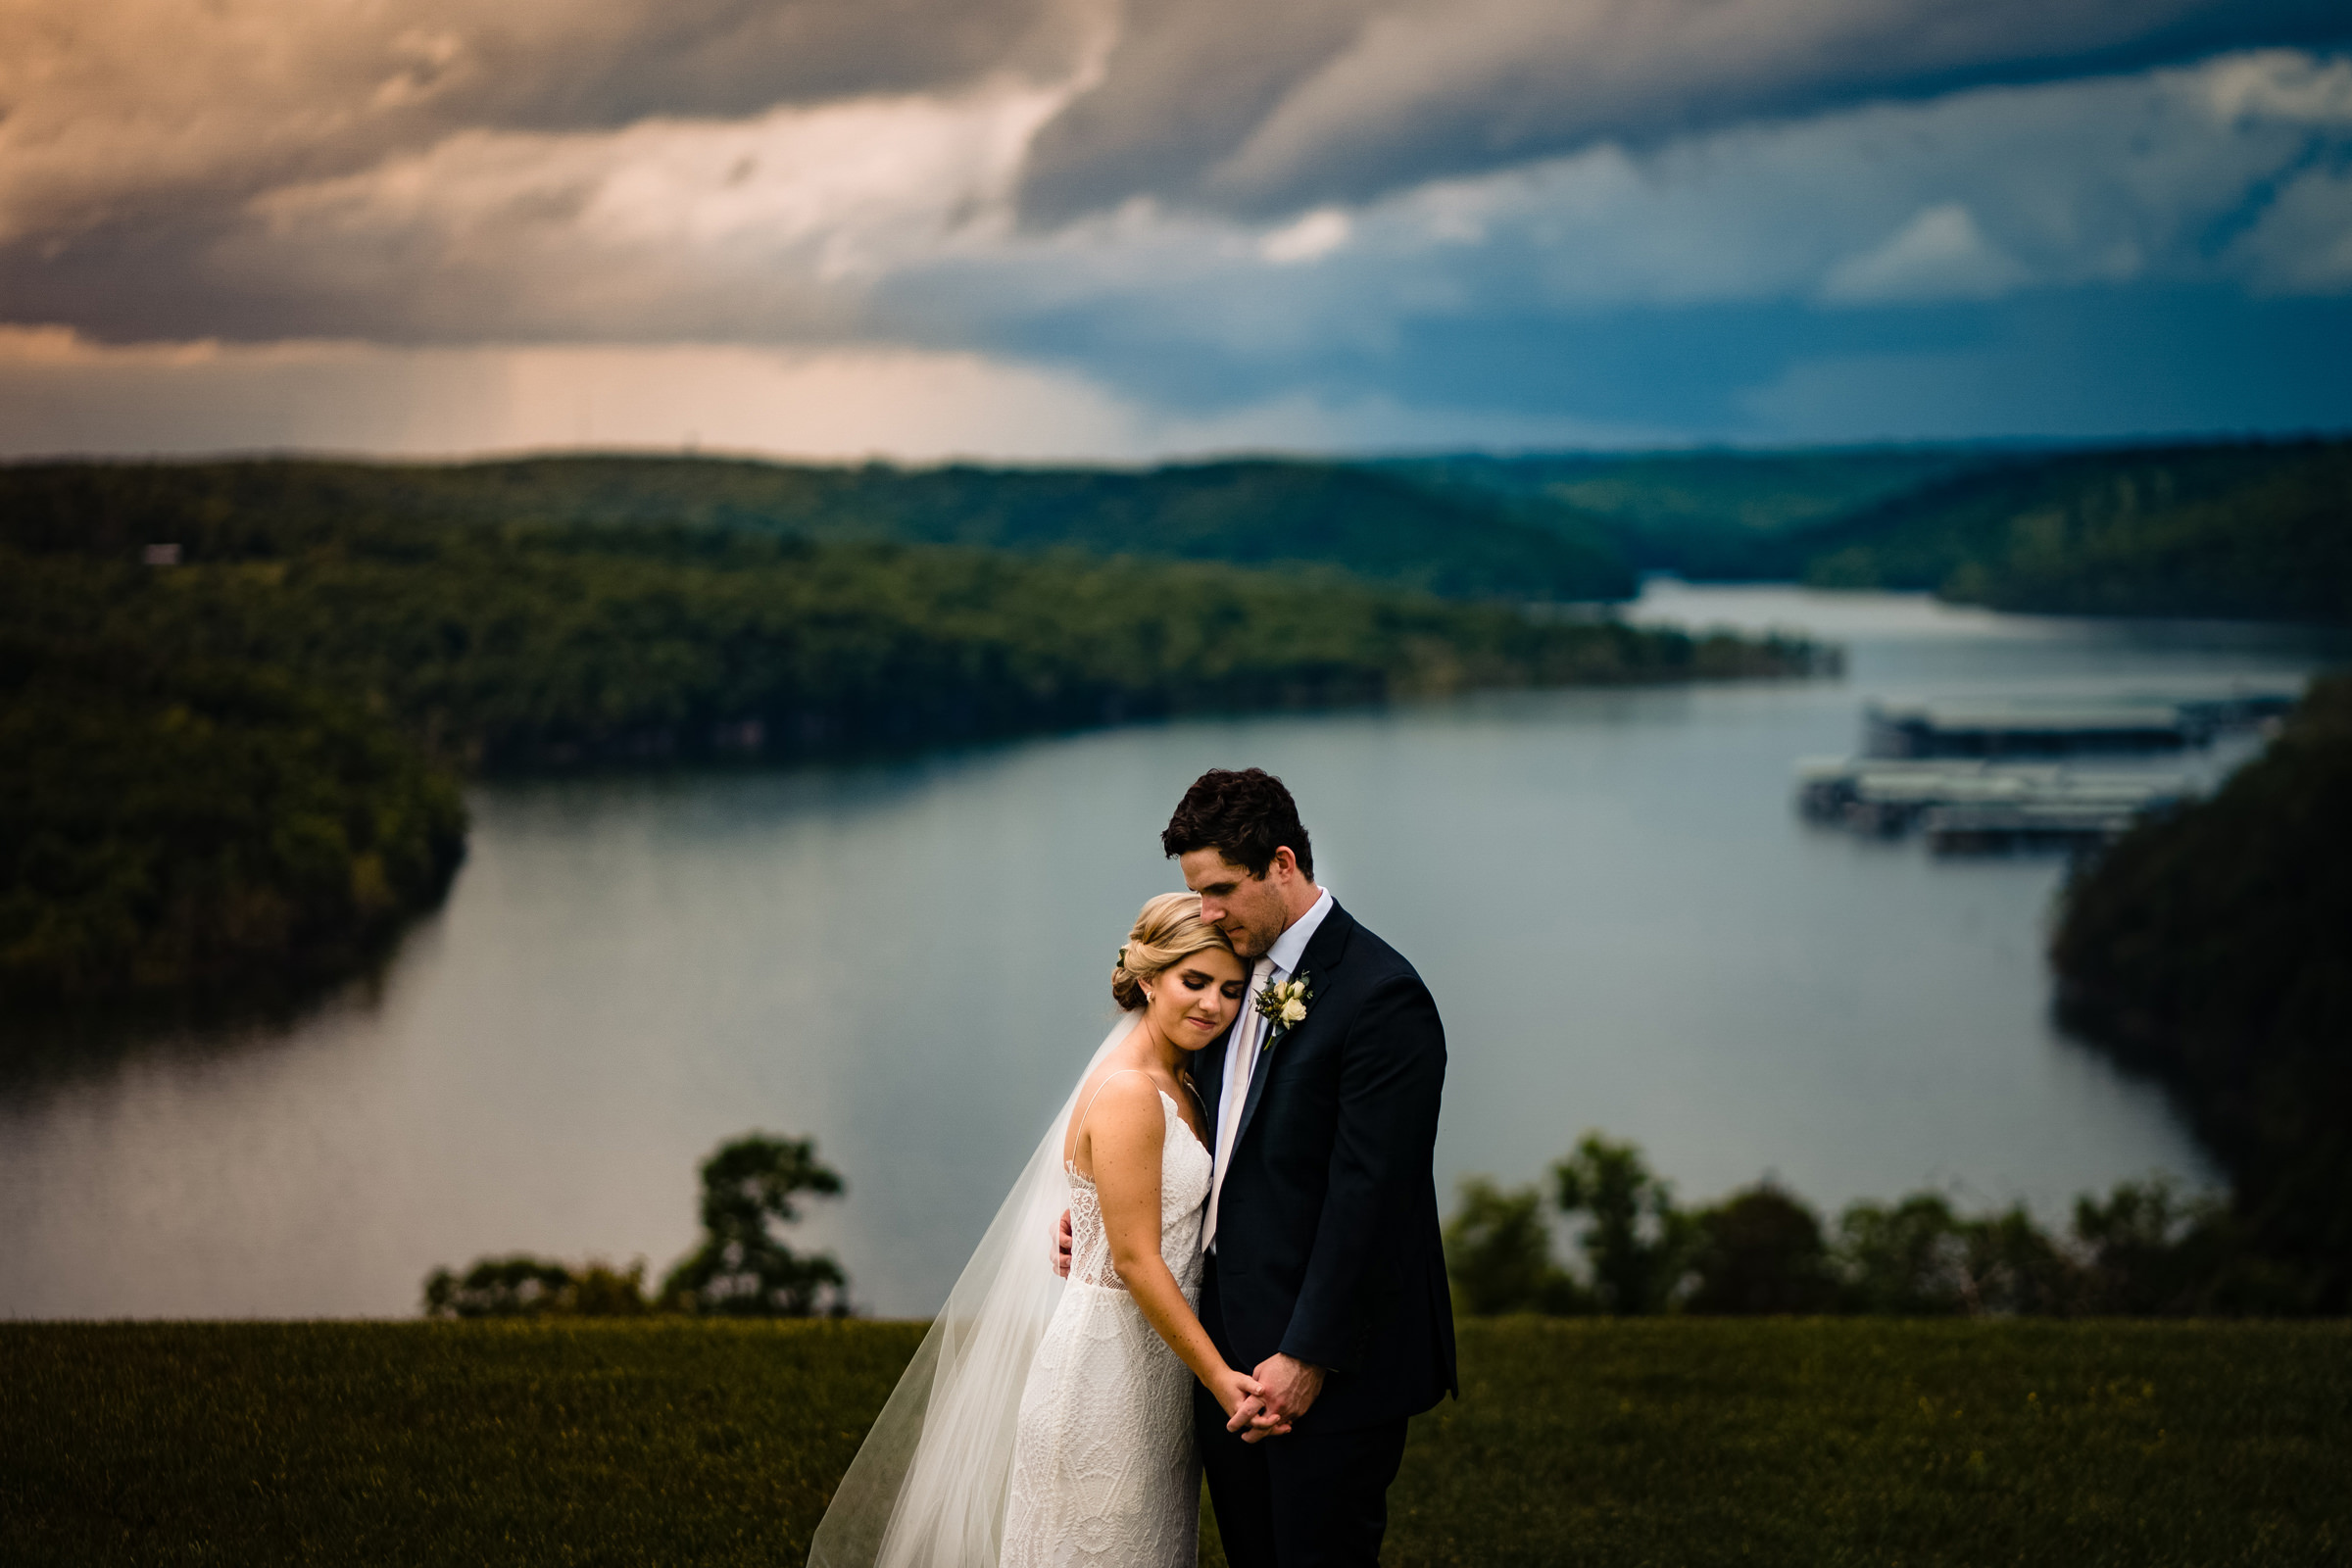 Couple portrait against scenic waterway - photo by Vinson Images